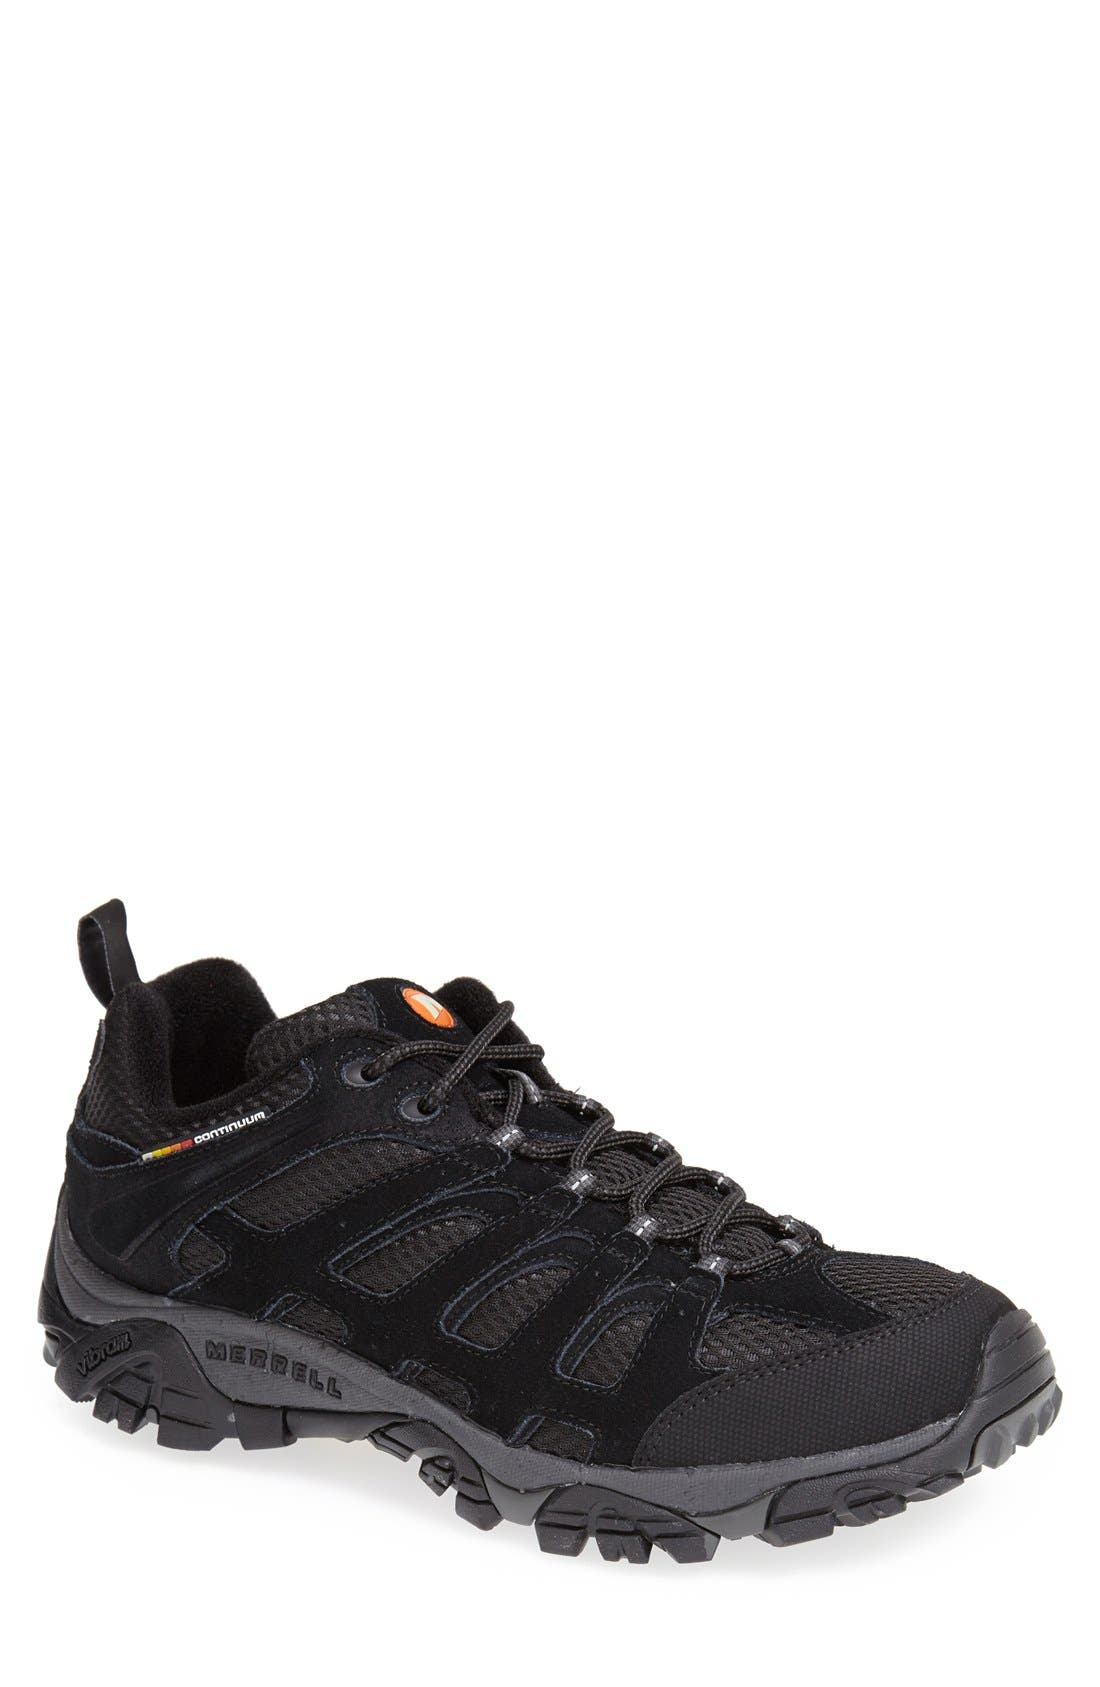 Alternate Image 1 Selected - Merrell 'Moab Ventilator' Hiking Shoe (Men)